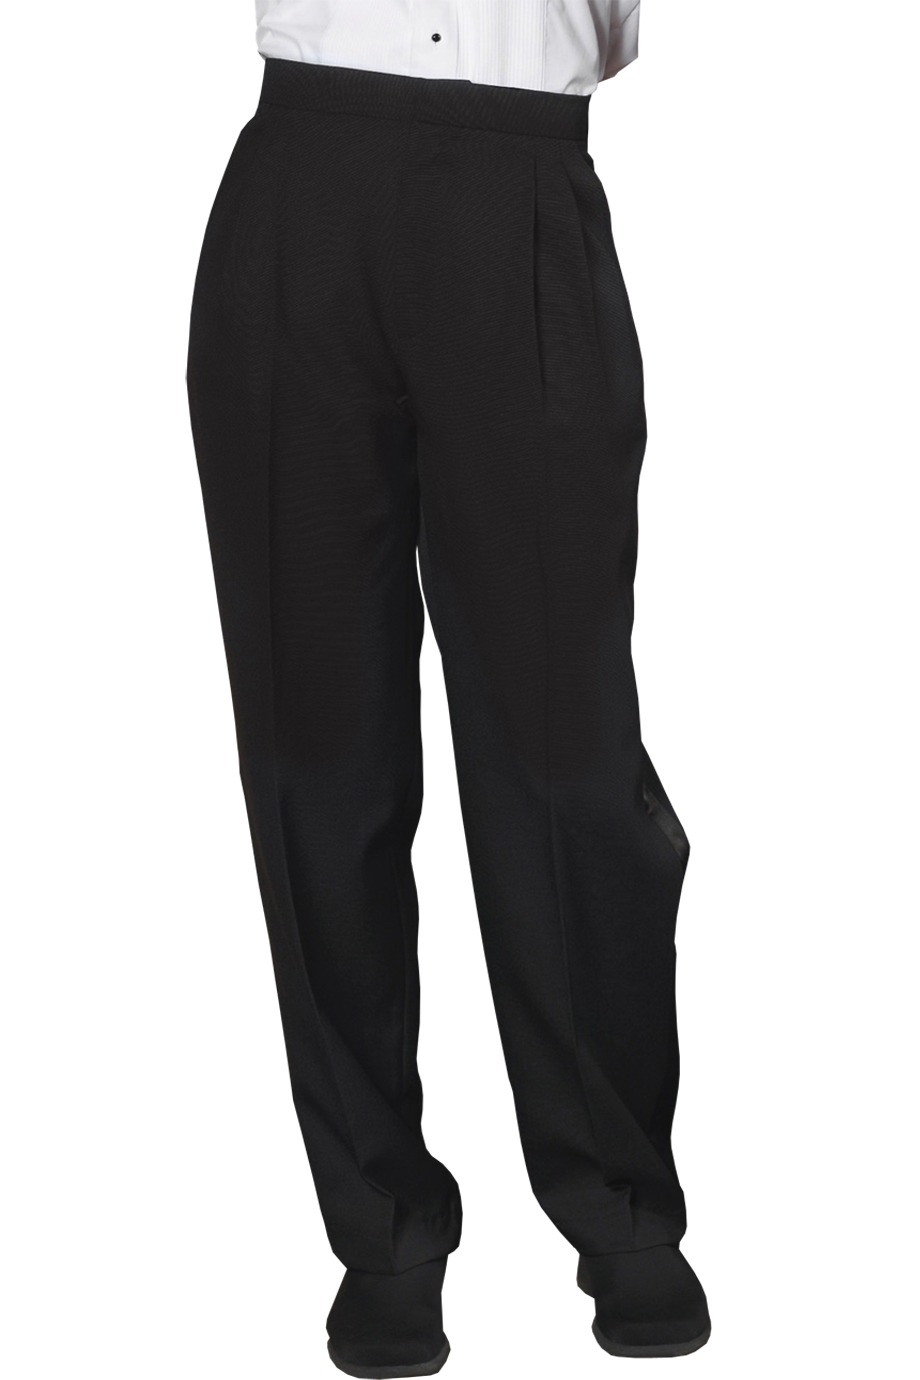 Edwards Garment 8791 - Women's Tuxedo Pleated Pant